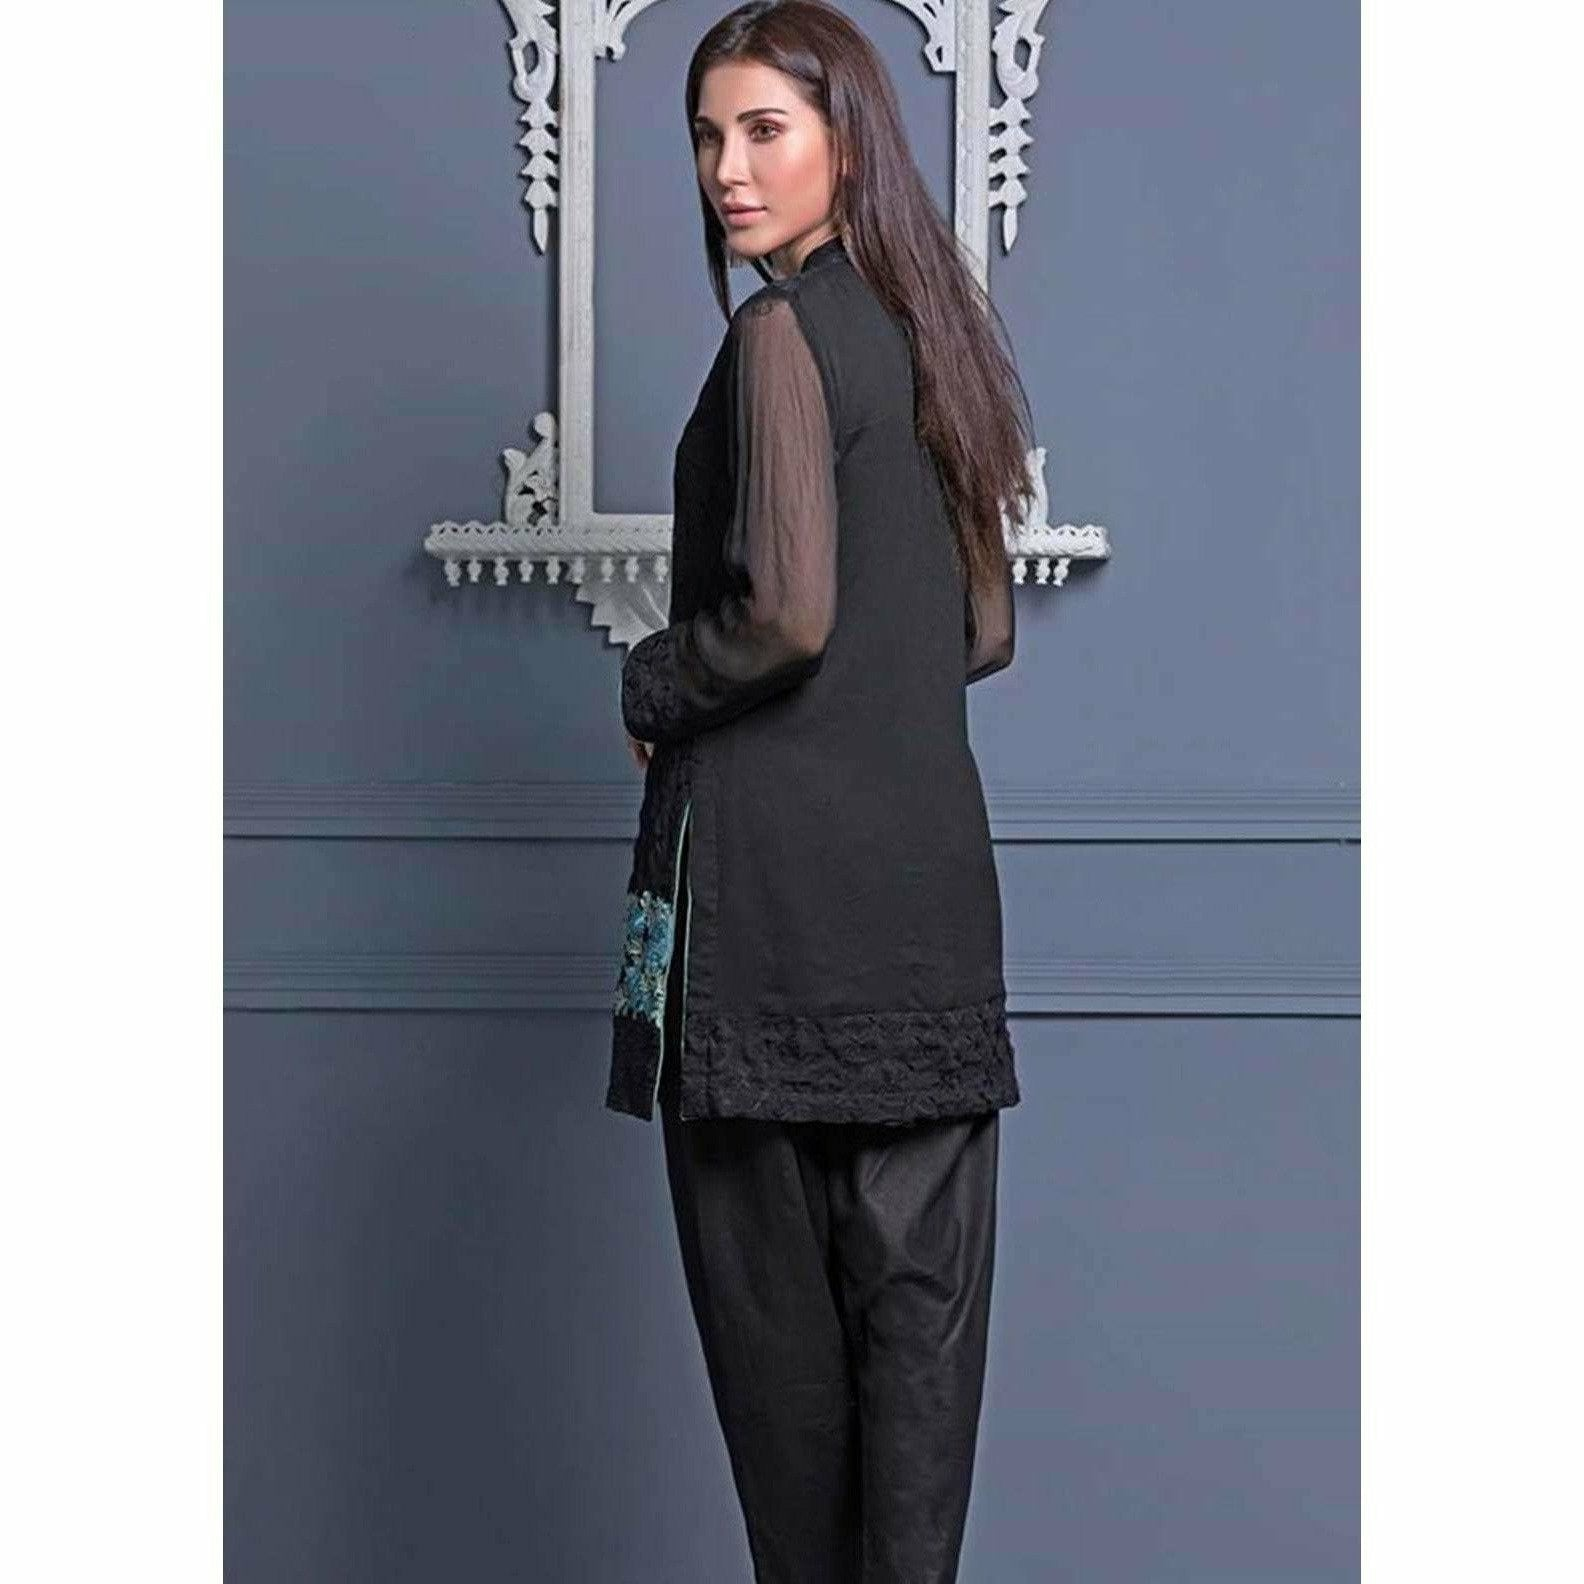 Areeba Saleem Embroidered Two Piece Kurti ZS-01